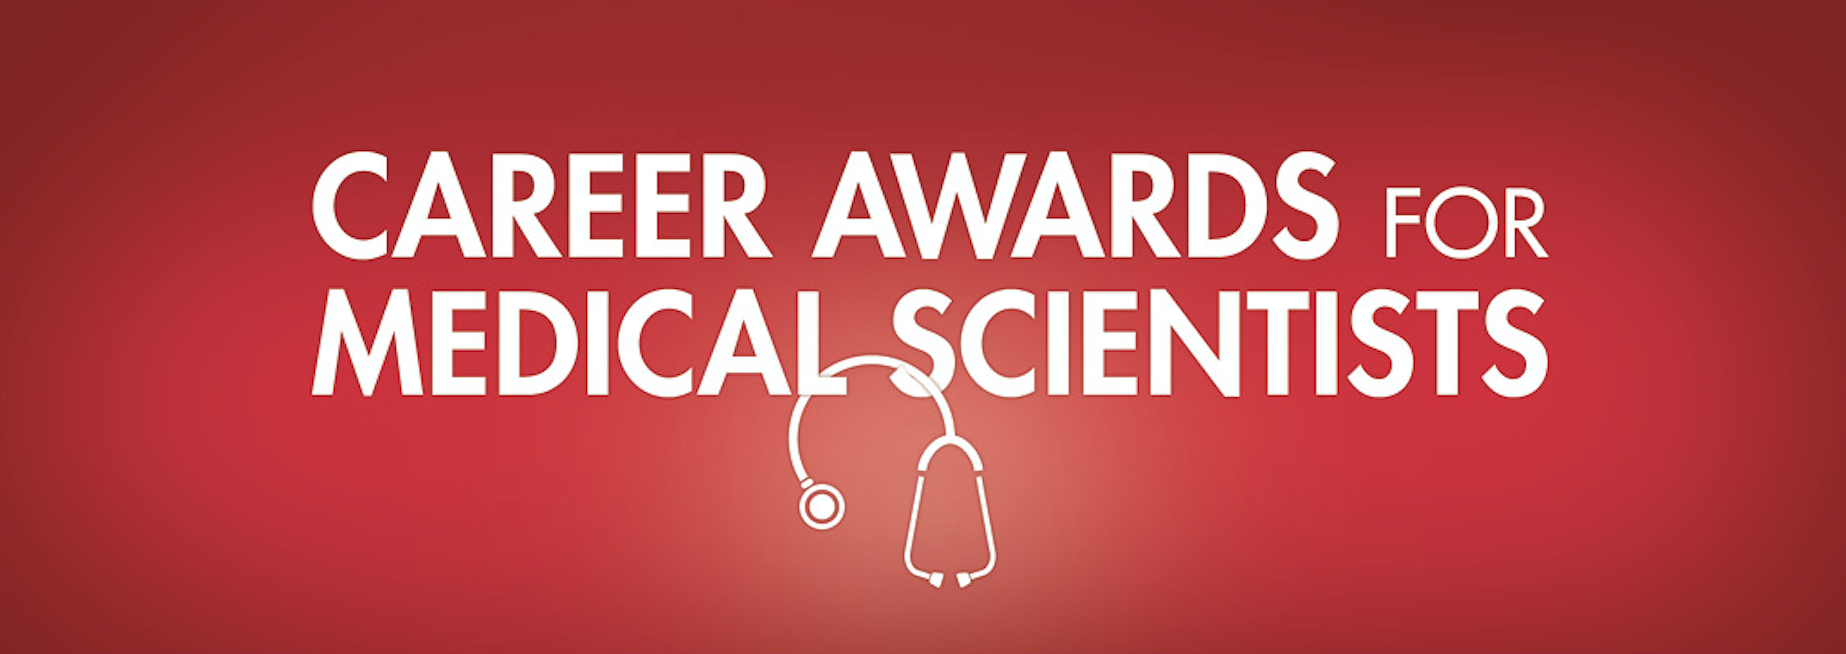 2021 Career Awards for Medical Scientists Announced